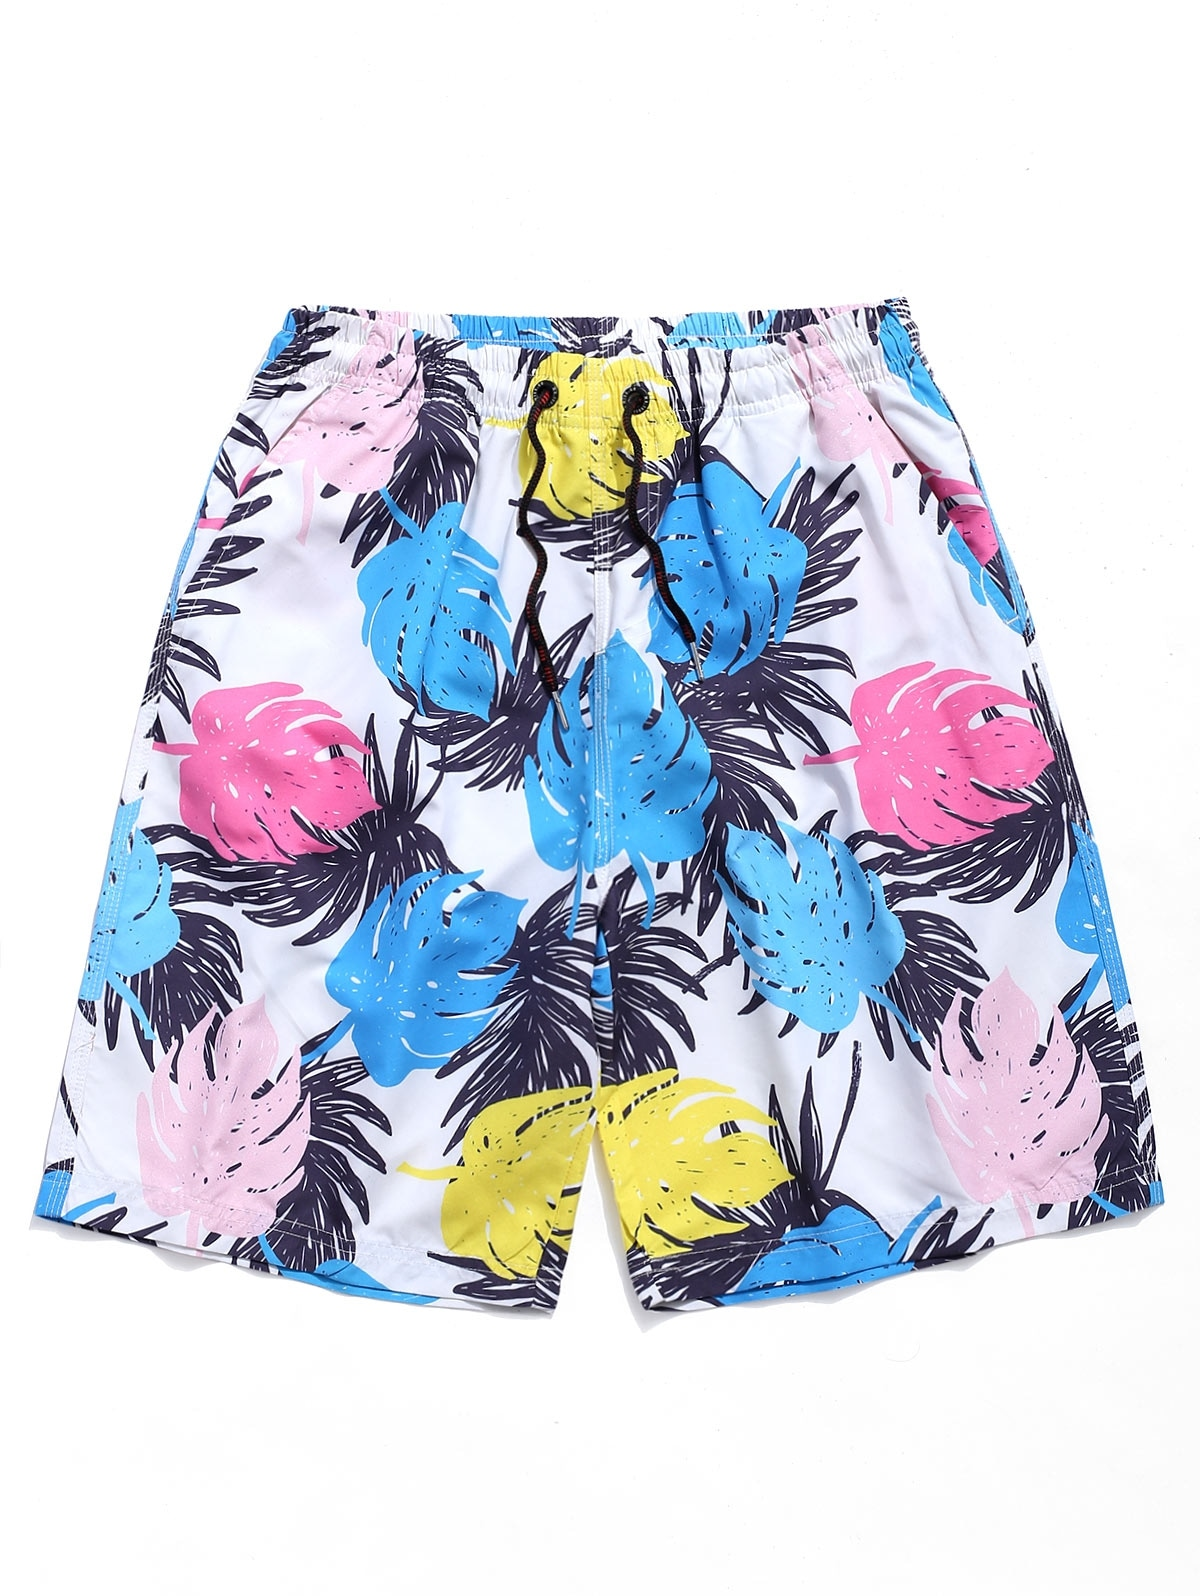 Leaves Print Drawstring Beach Shorts